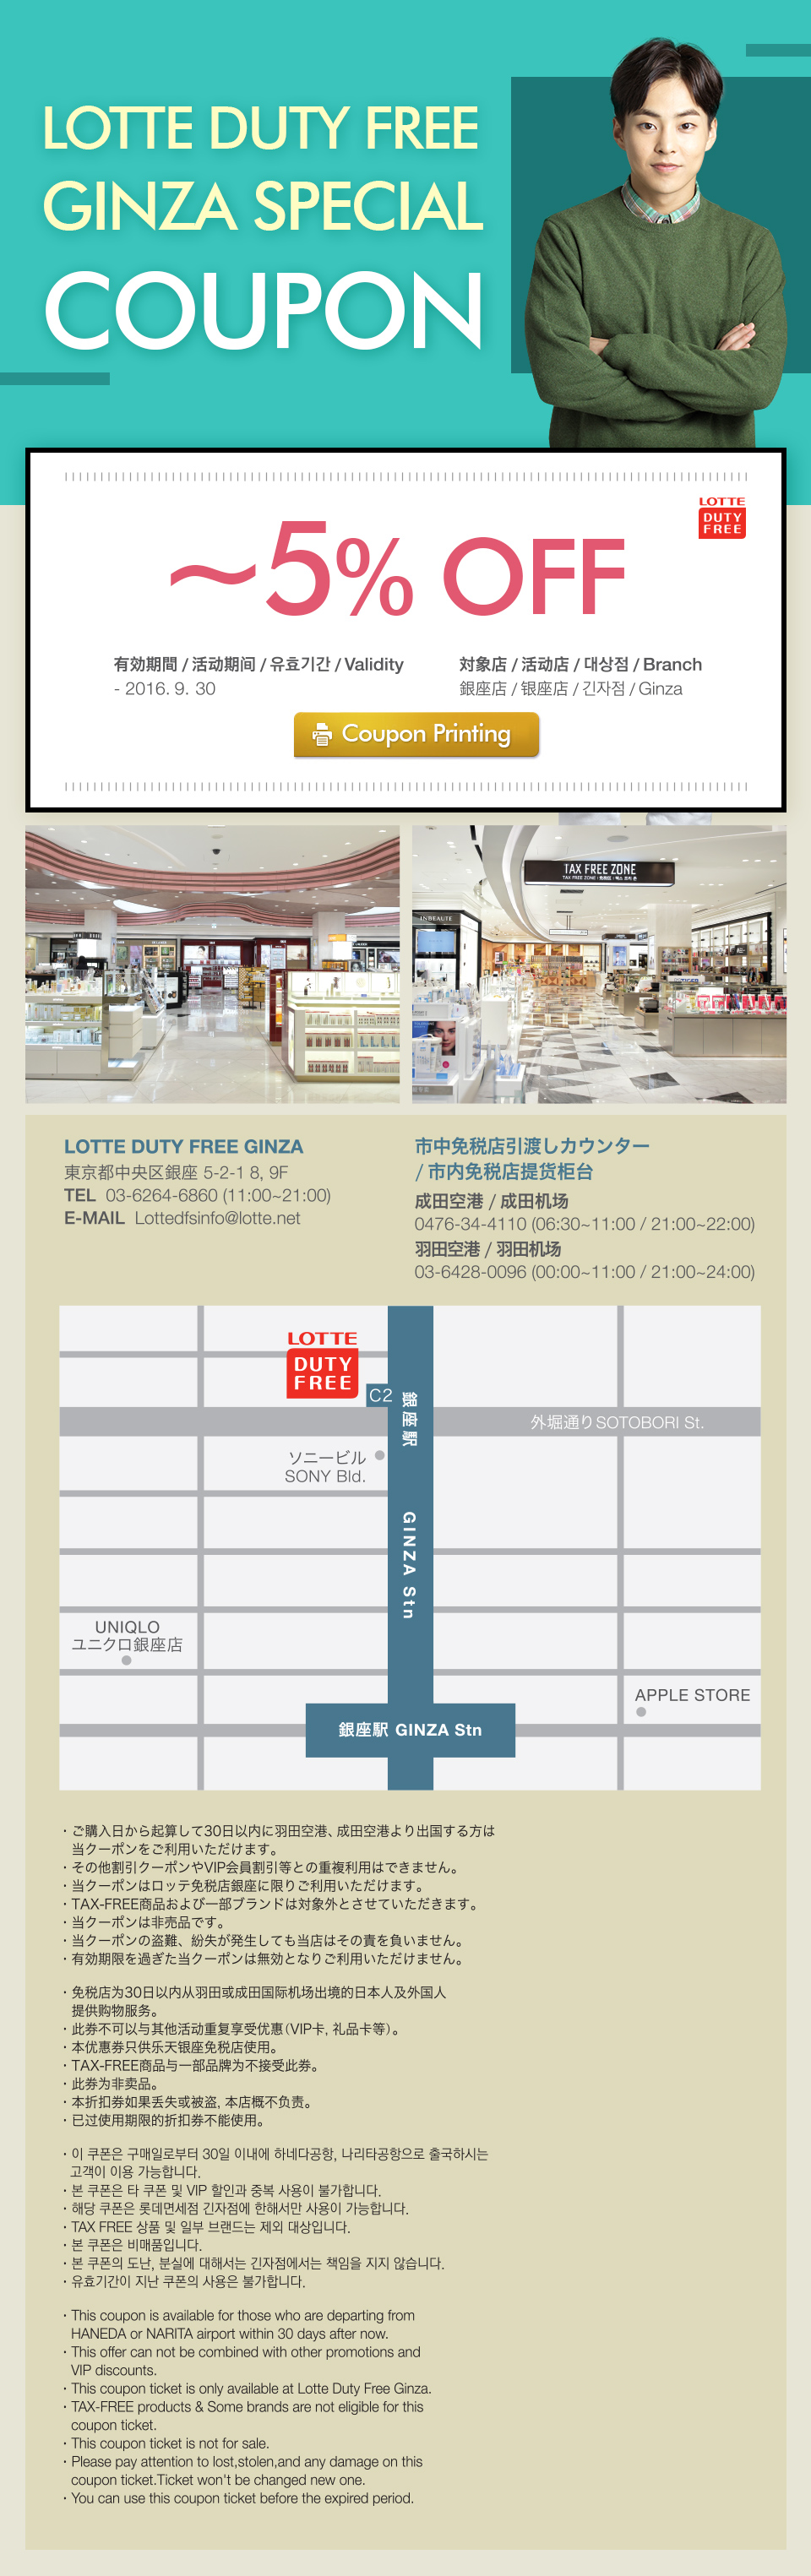 lotte duty free ginza special coupon 5%